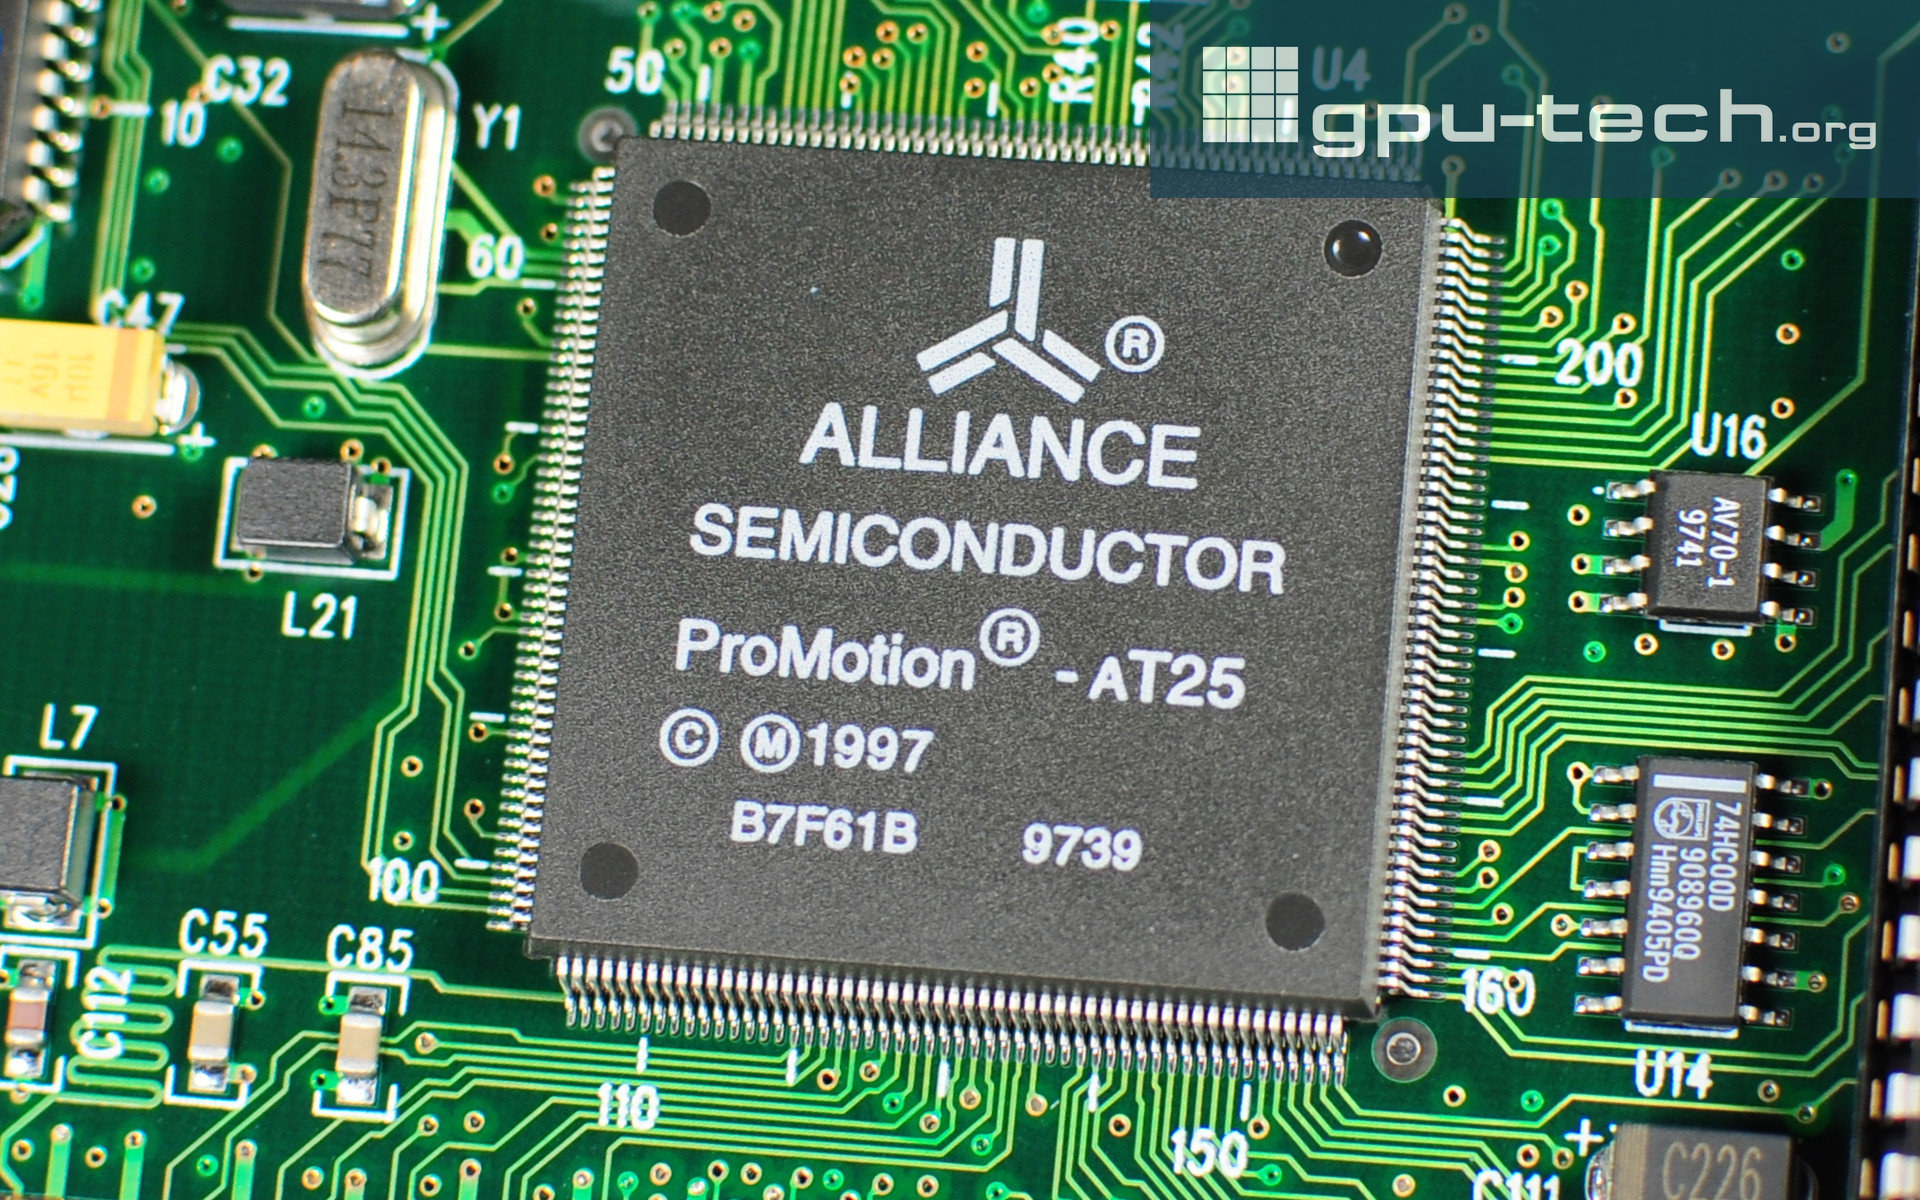 3dfx Voodoo Rush: Alliance ProMotion AT25 (2D)